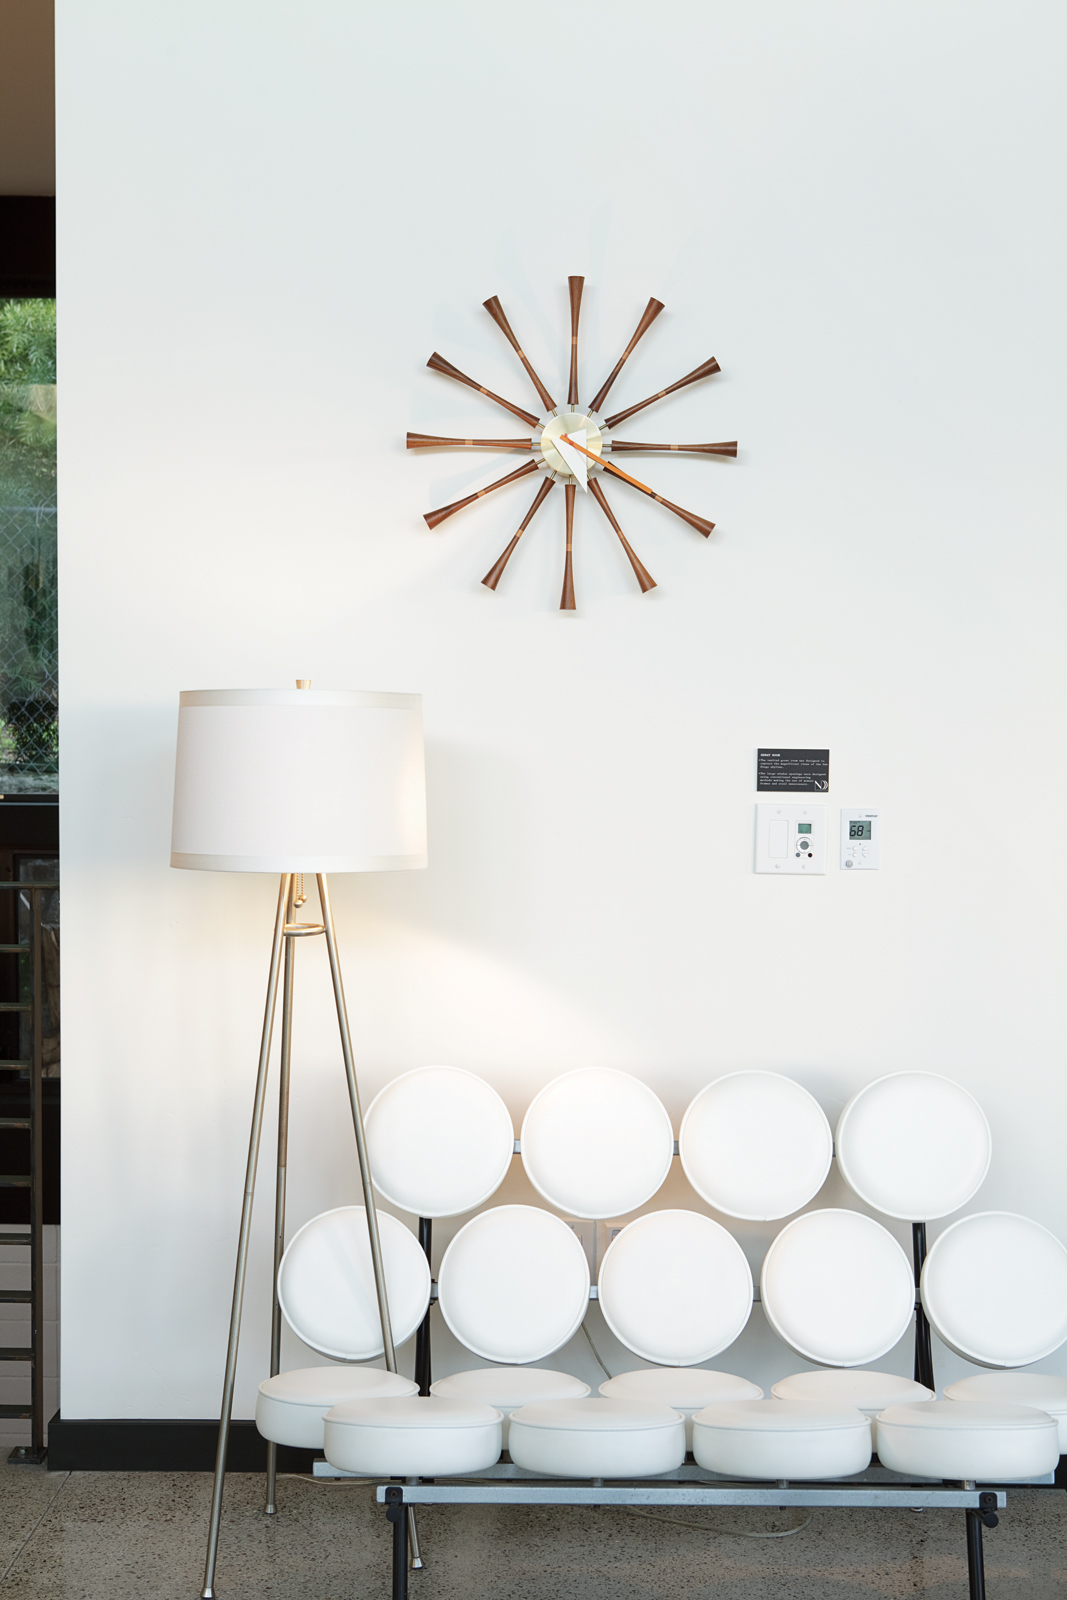 Marshmallow sofa, clock, white lamp